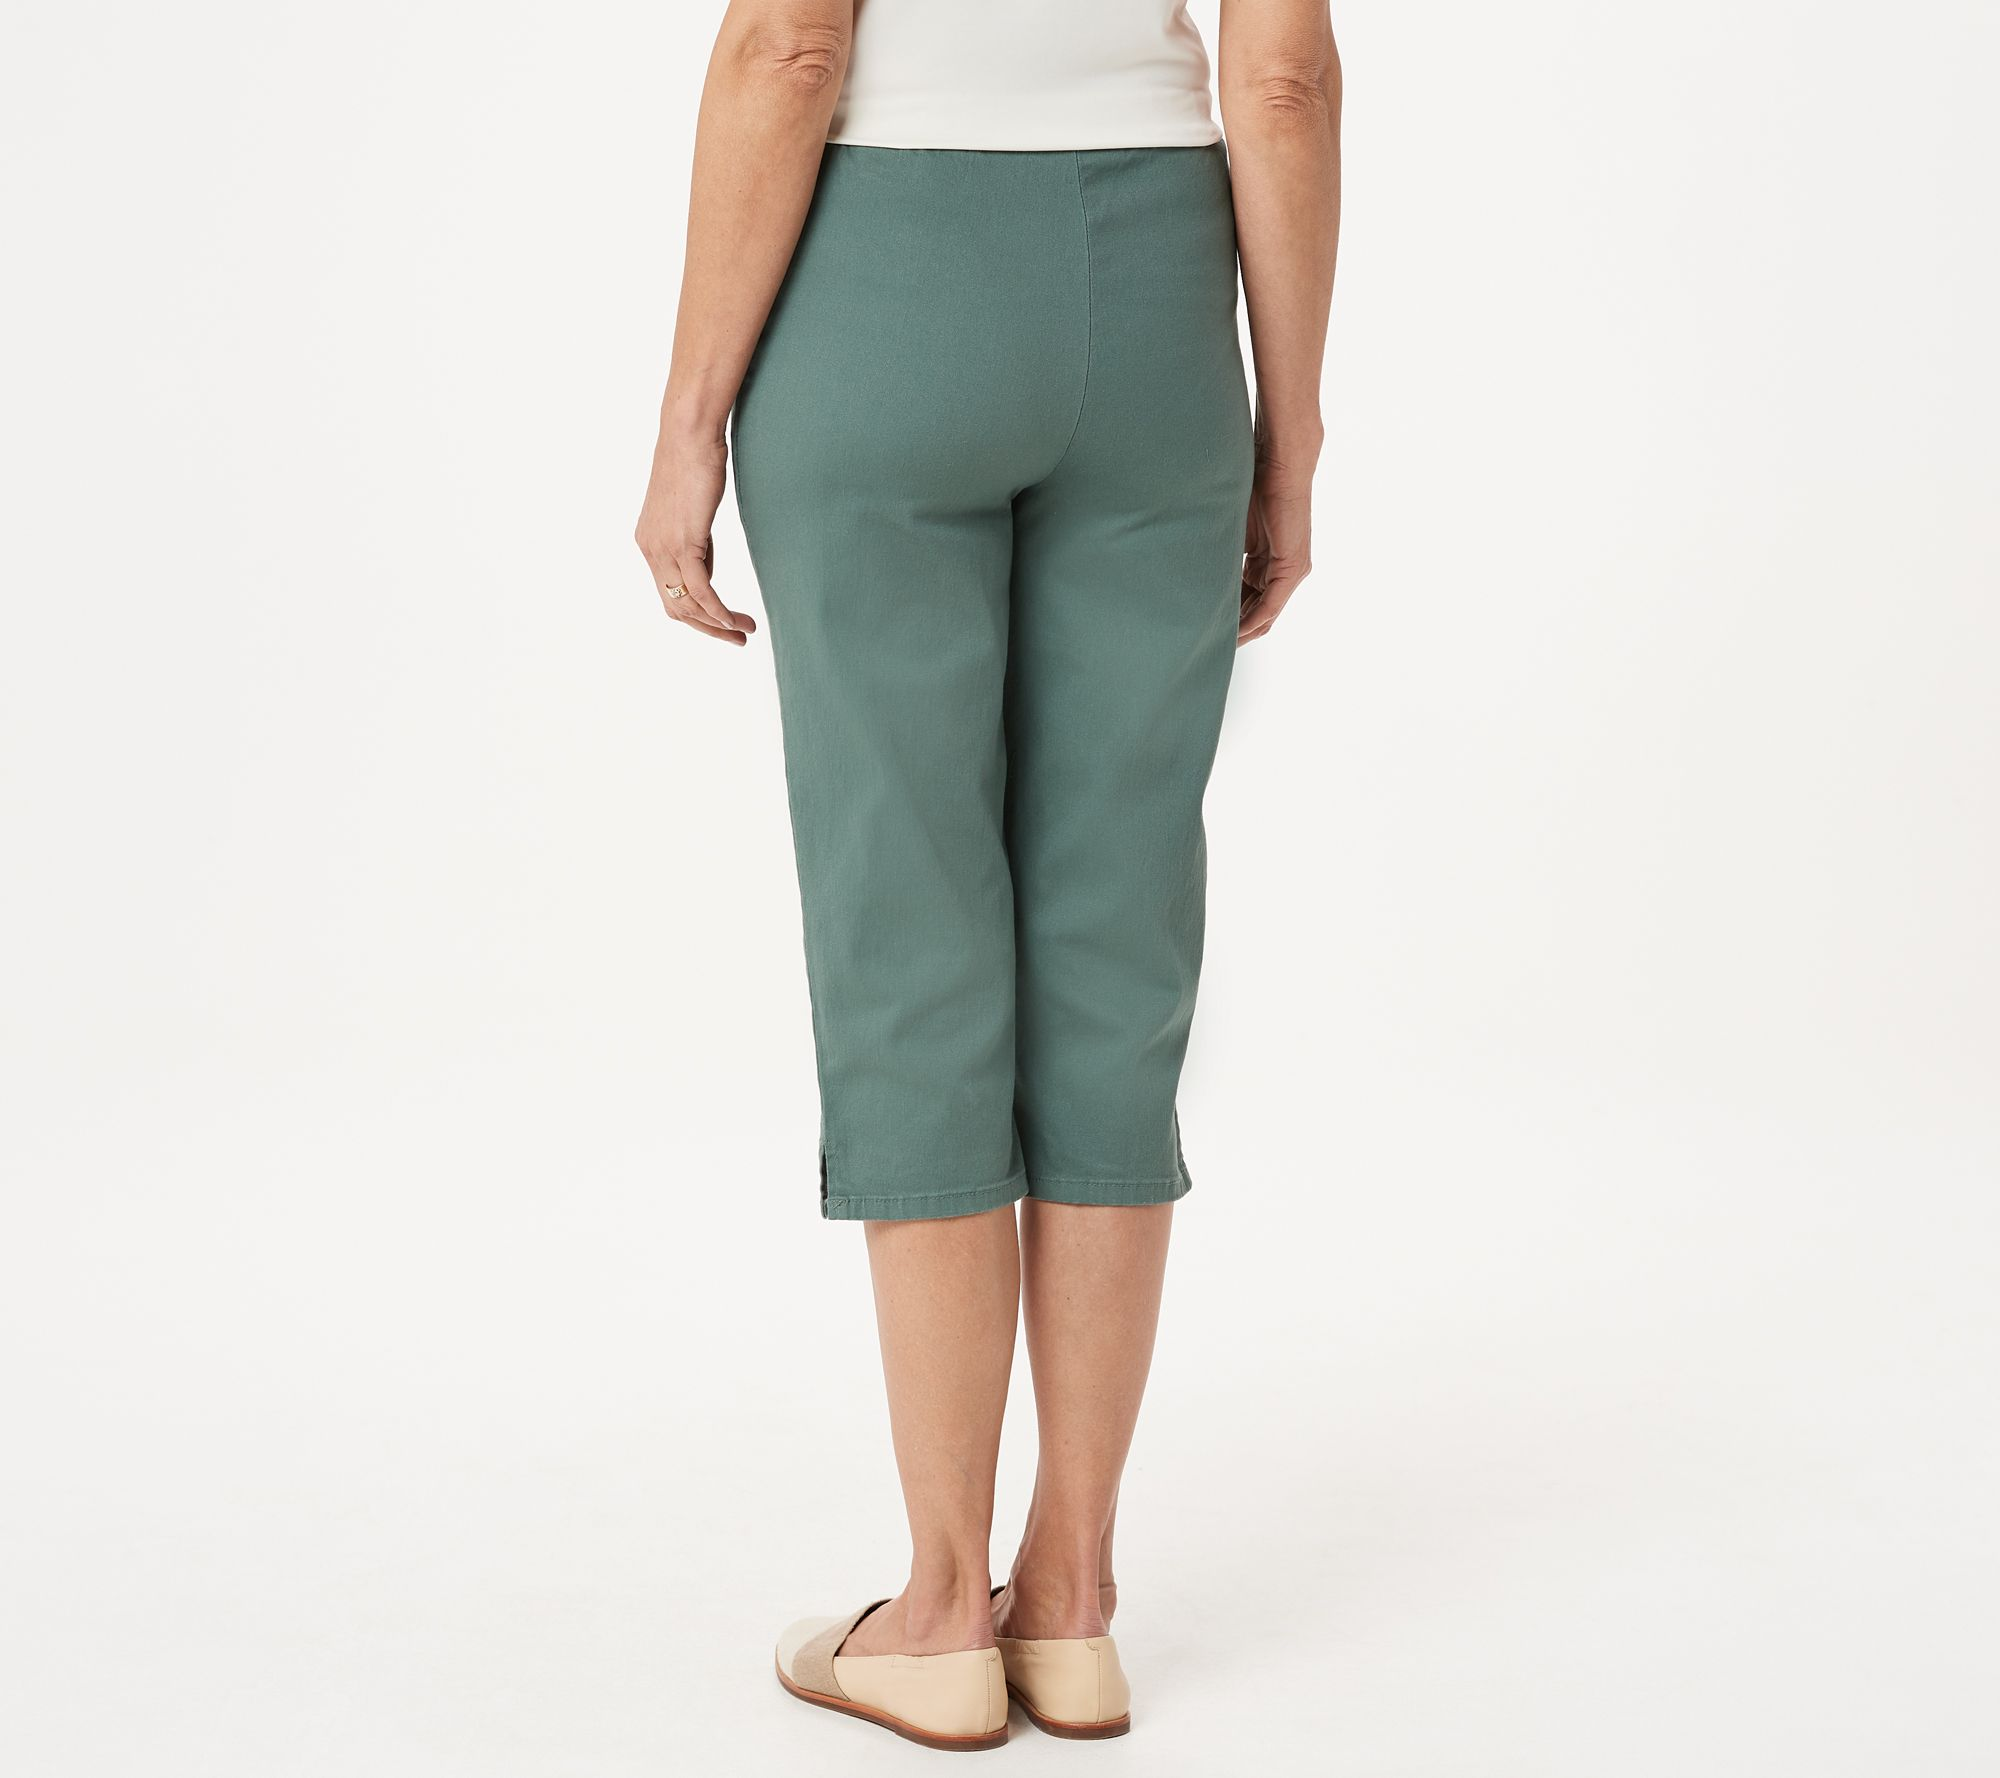 Style & Co Cargo Capris 18 Olive In Short Supply Clothing, Shoes & Accessories